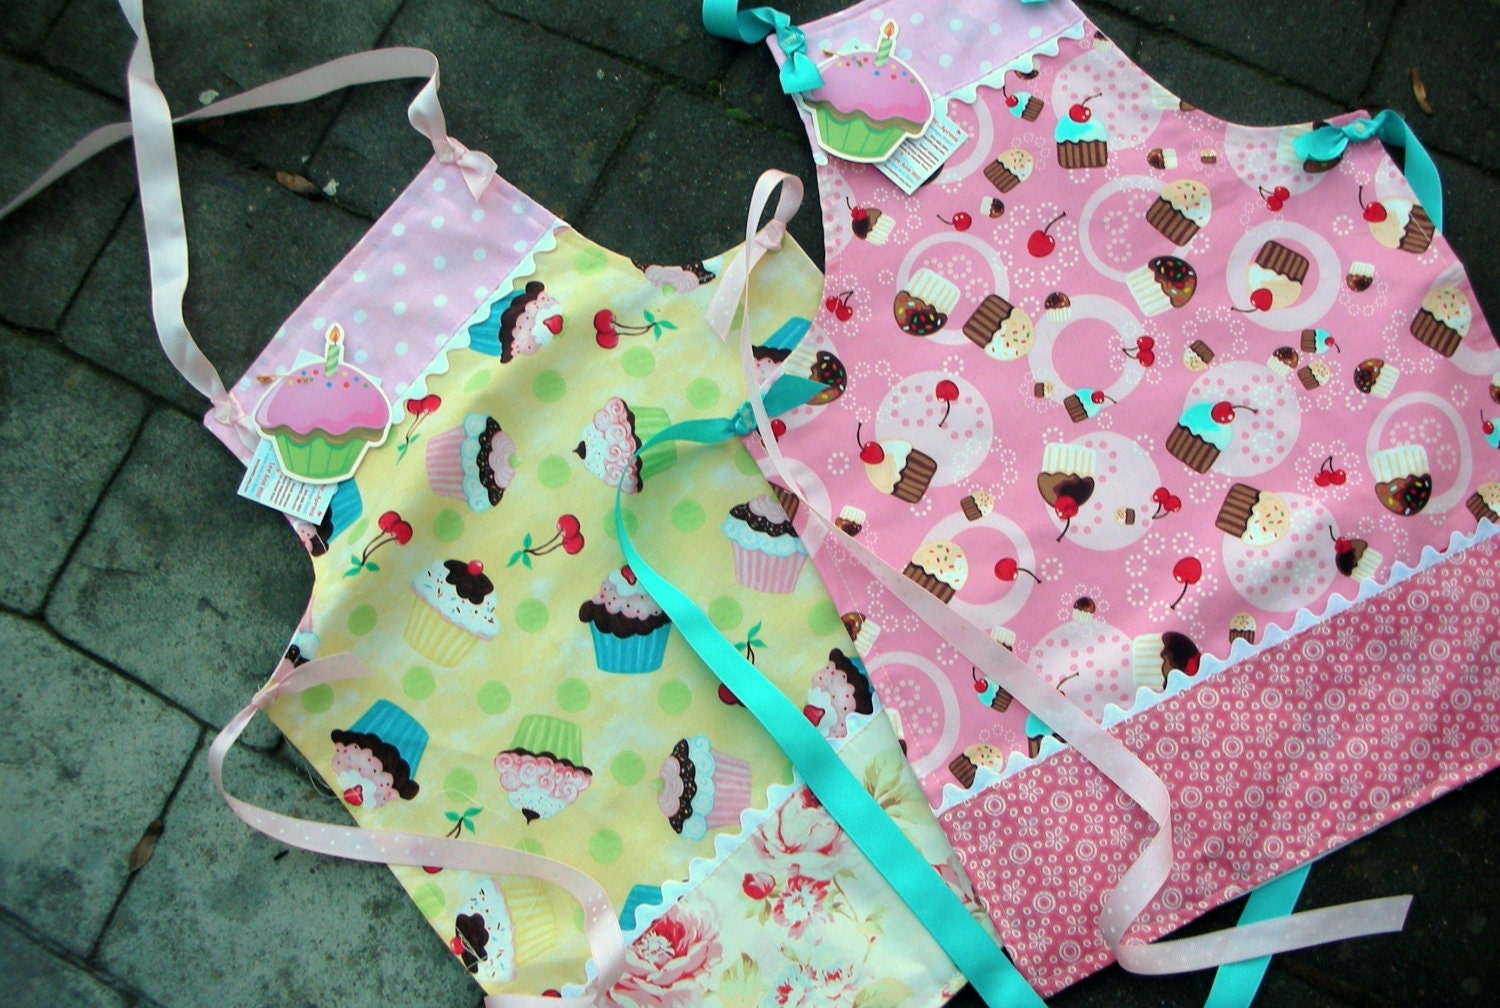 Childrens Aprons - Sweet Cupcake Girl Apron - Size 6 to 8 Apron - Confections by Robert Kaufman - Pink Cupcake Apron